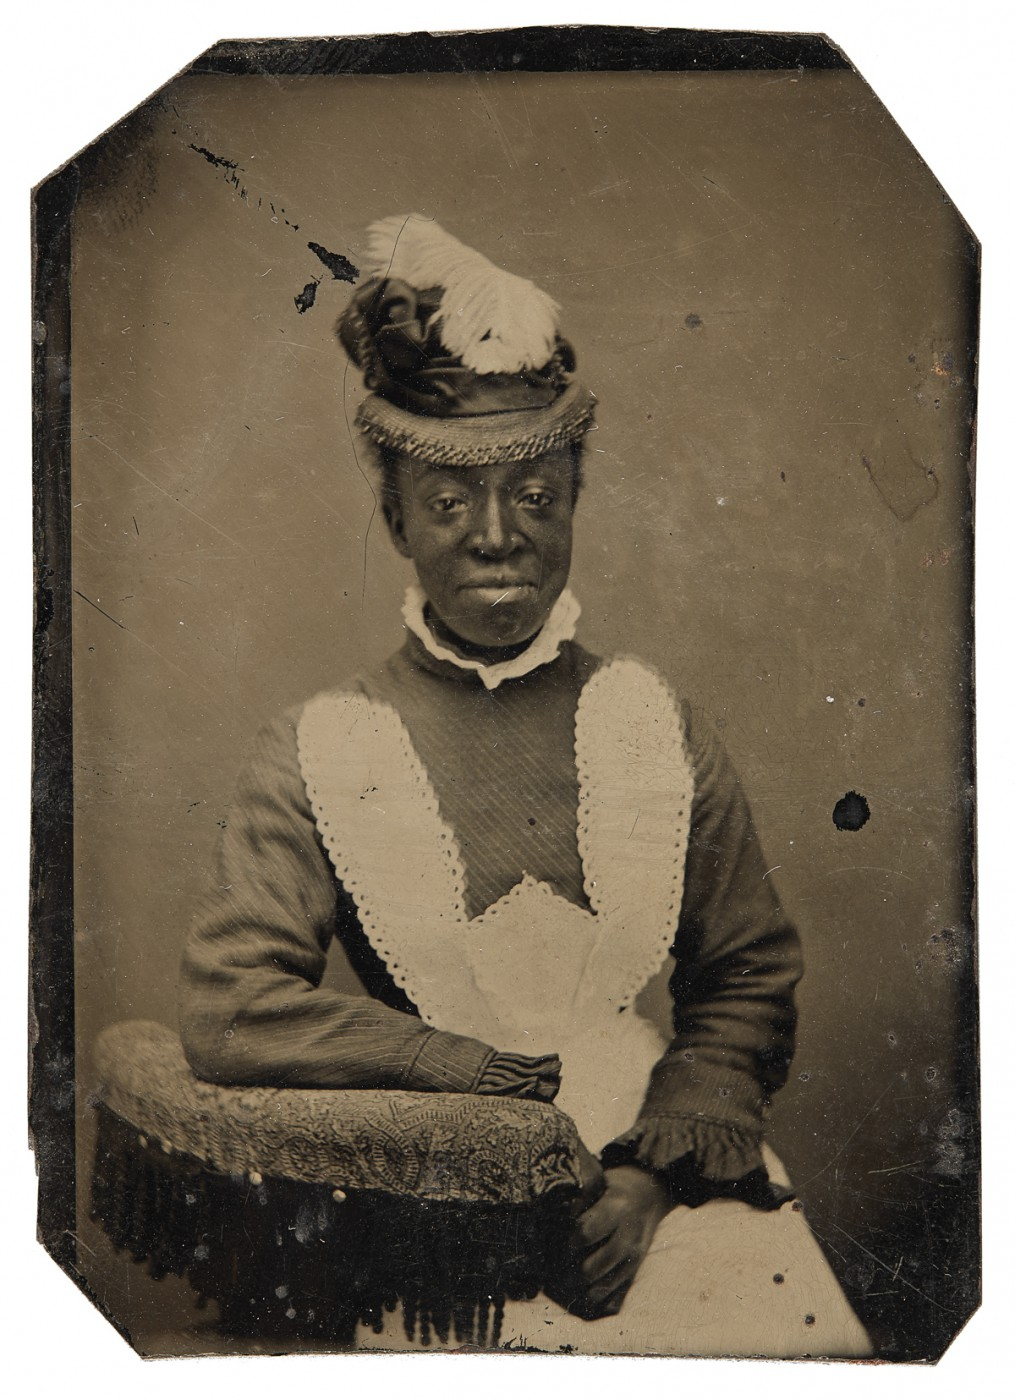 "Unknown photographer, </span><span><em>Unidentified woman</em>, </span><span>1870-1880. Tintype, 3x2.5"". Richard Bell Family Fonds, Brock University Archives. Courtesy of Brock University Archives. © 2017 Art Gallery of Ontario."